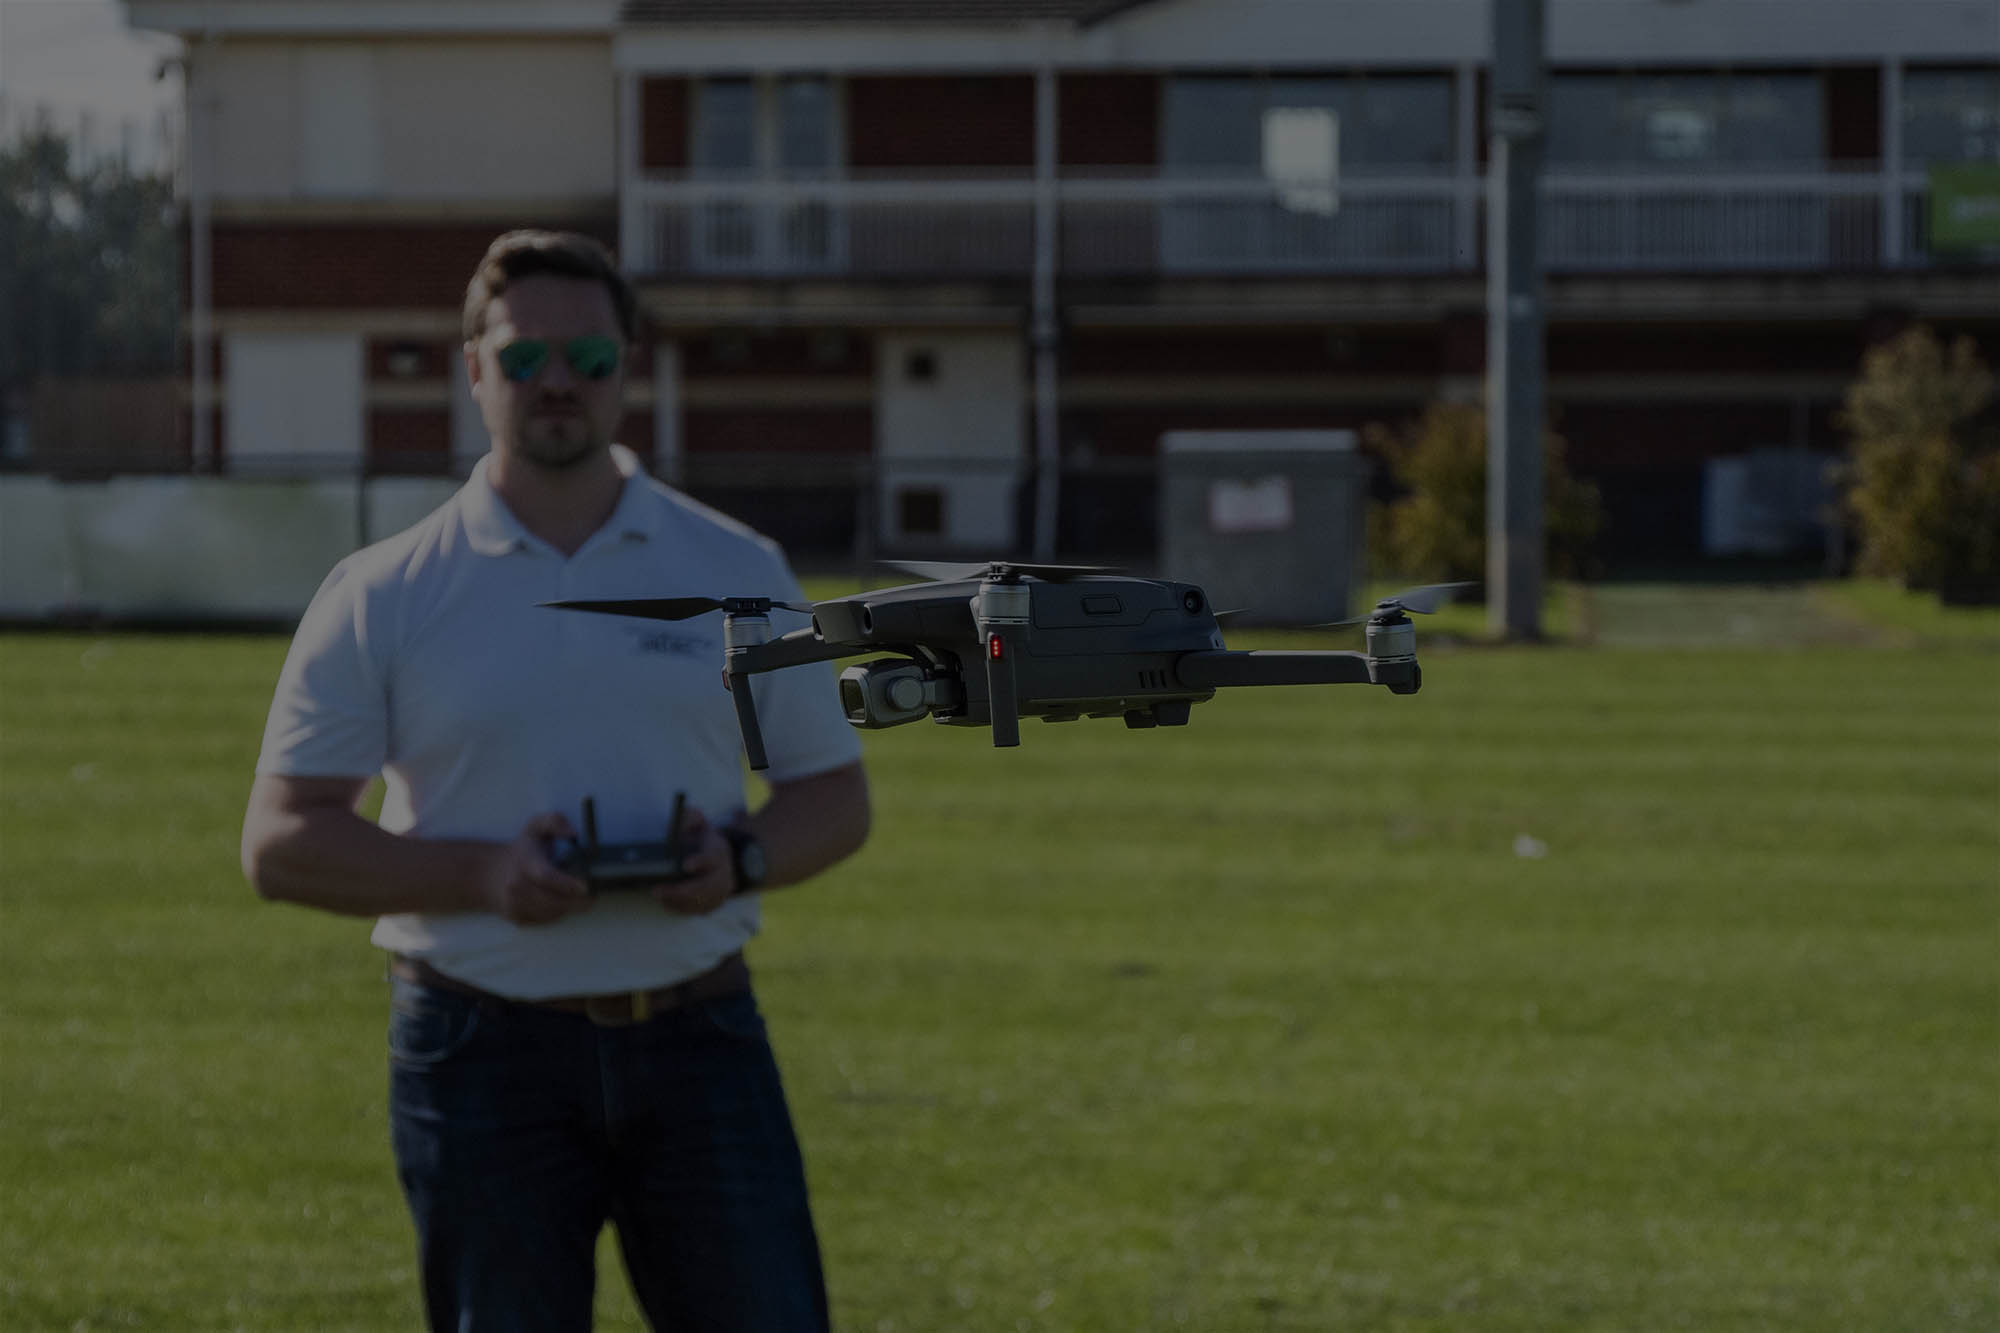 Matt Williams flying the DJI Mavic 2 Pro